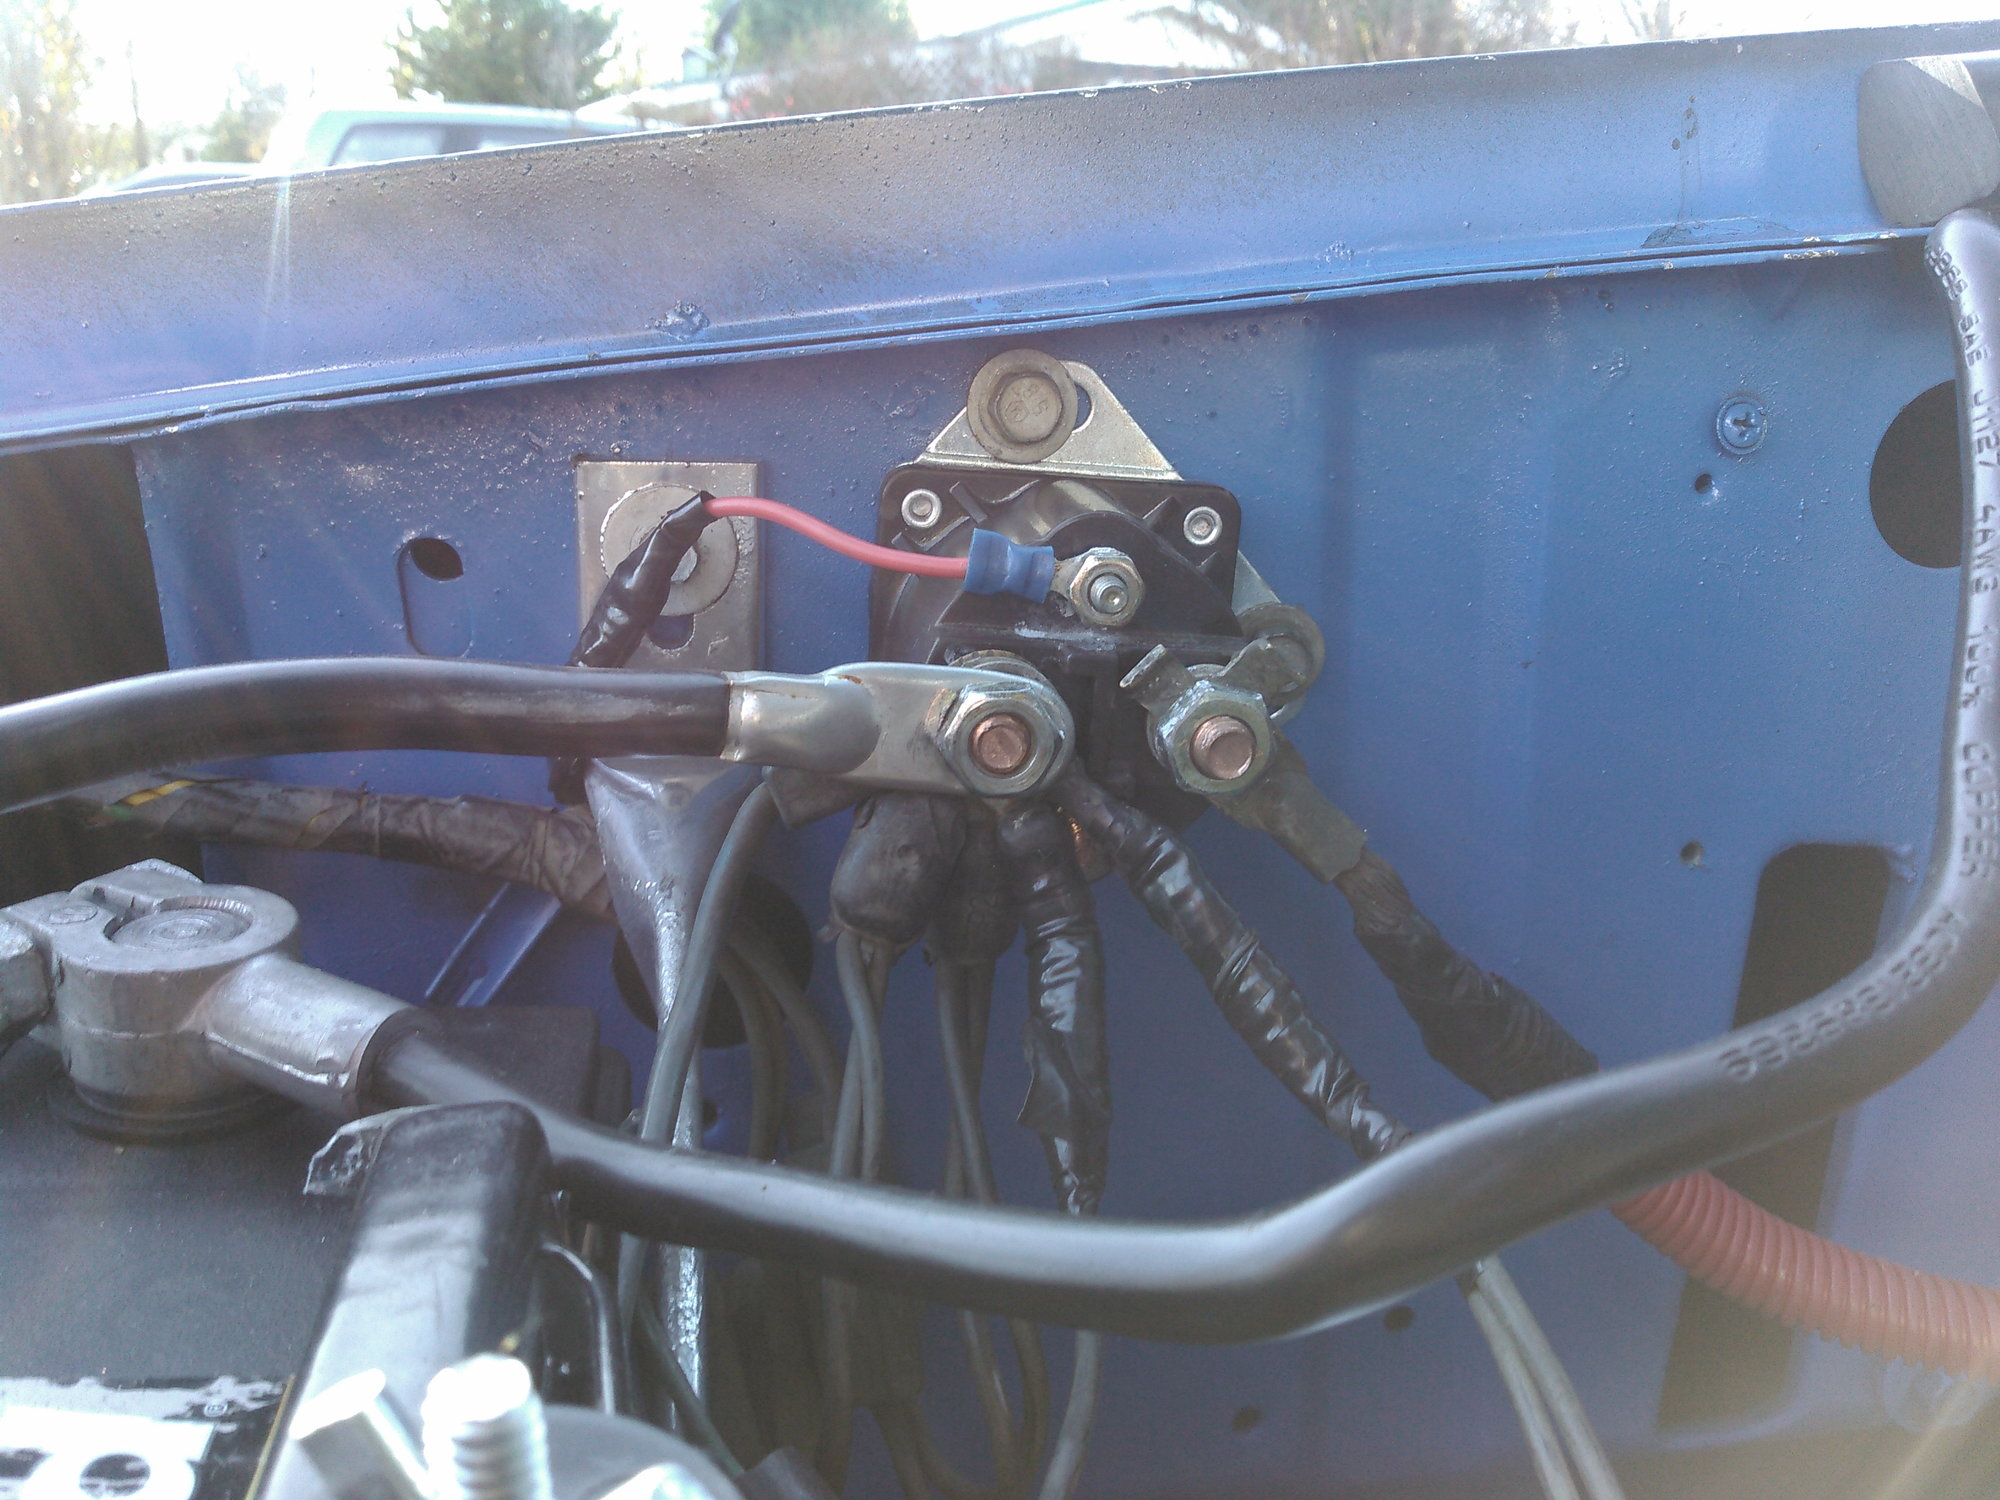 hight resolution of first blue wire on left goes down to alternator next two double come